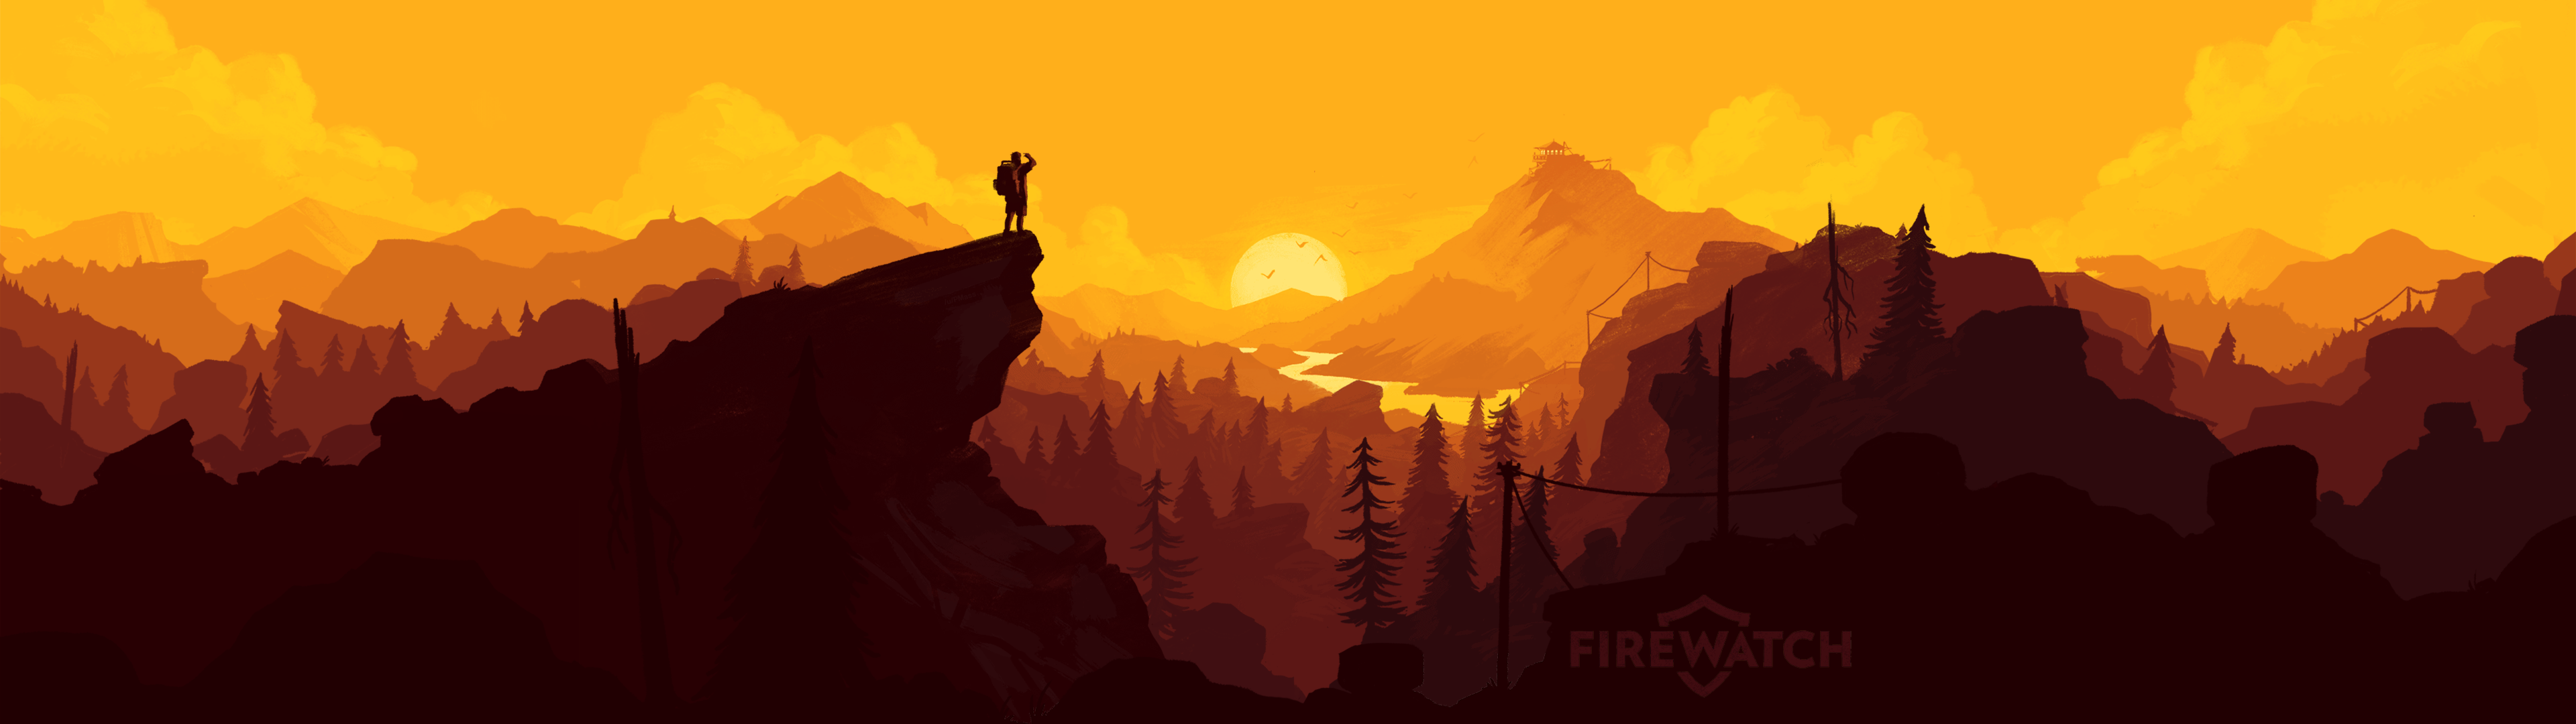 Firewatch Full Hd Wallpaper And Hintergrund 3840x1080